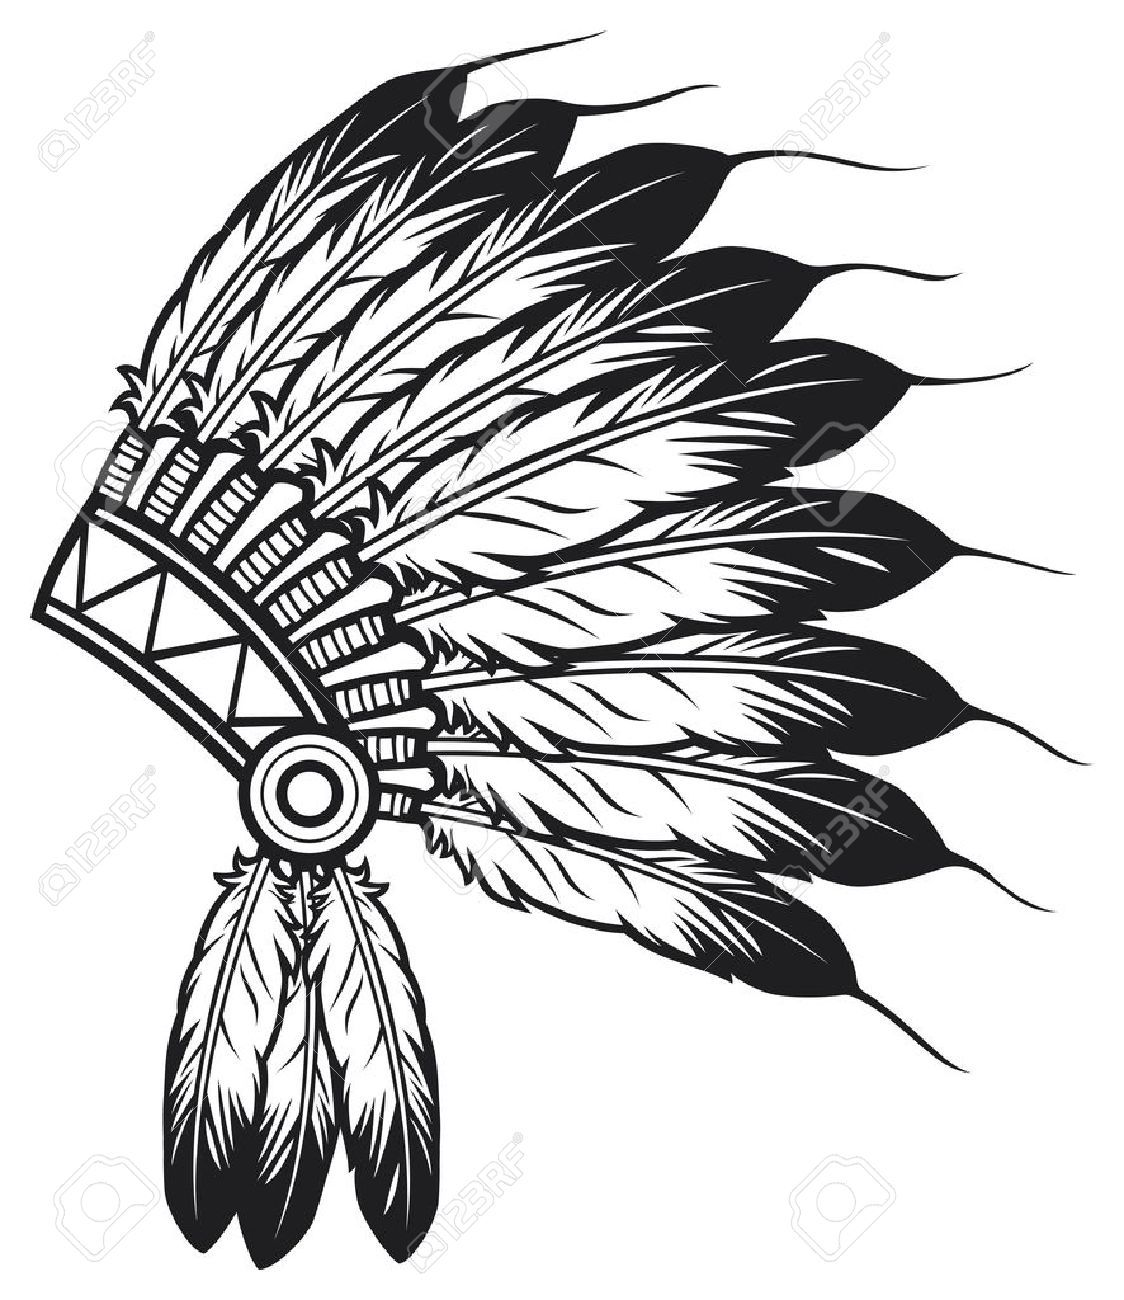 Native American Indian Chief Headdress Indian Chief Mascot Native American Symbols Native American Headdress Headdress Art